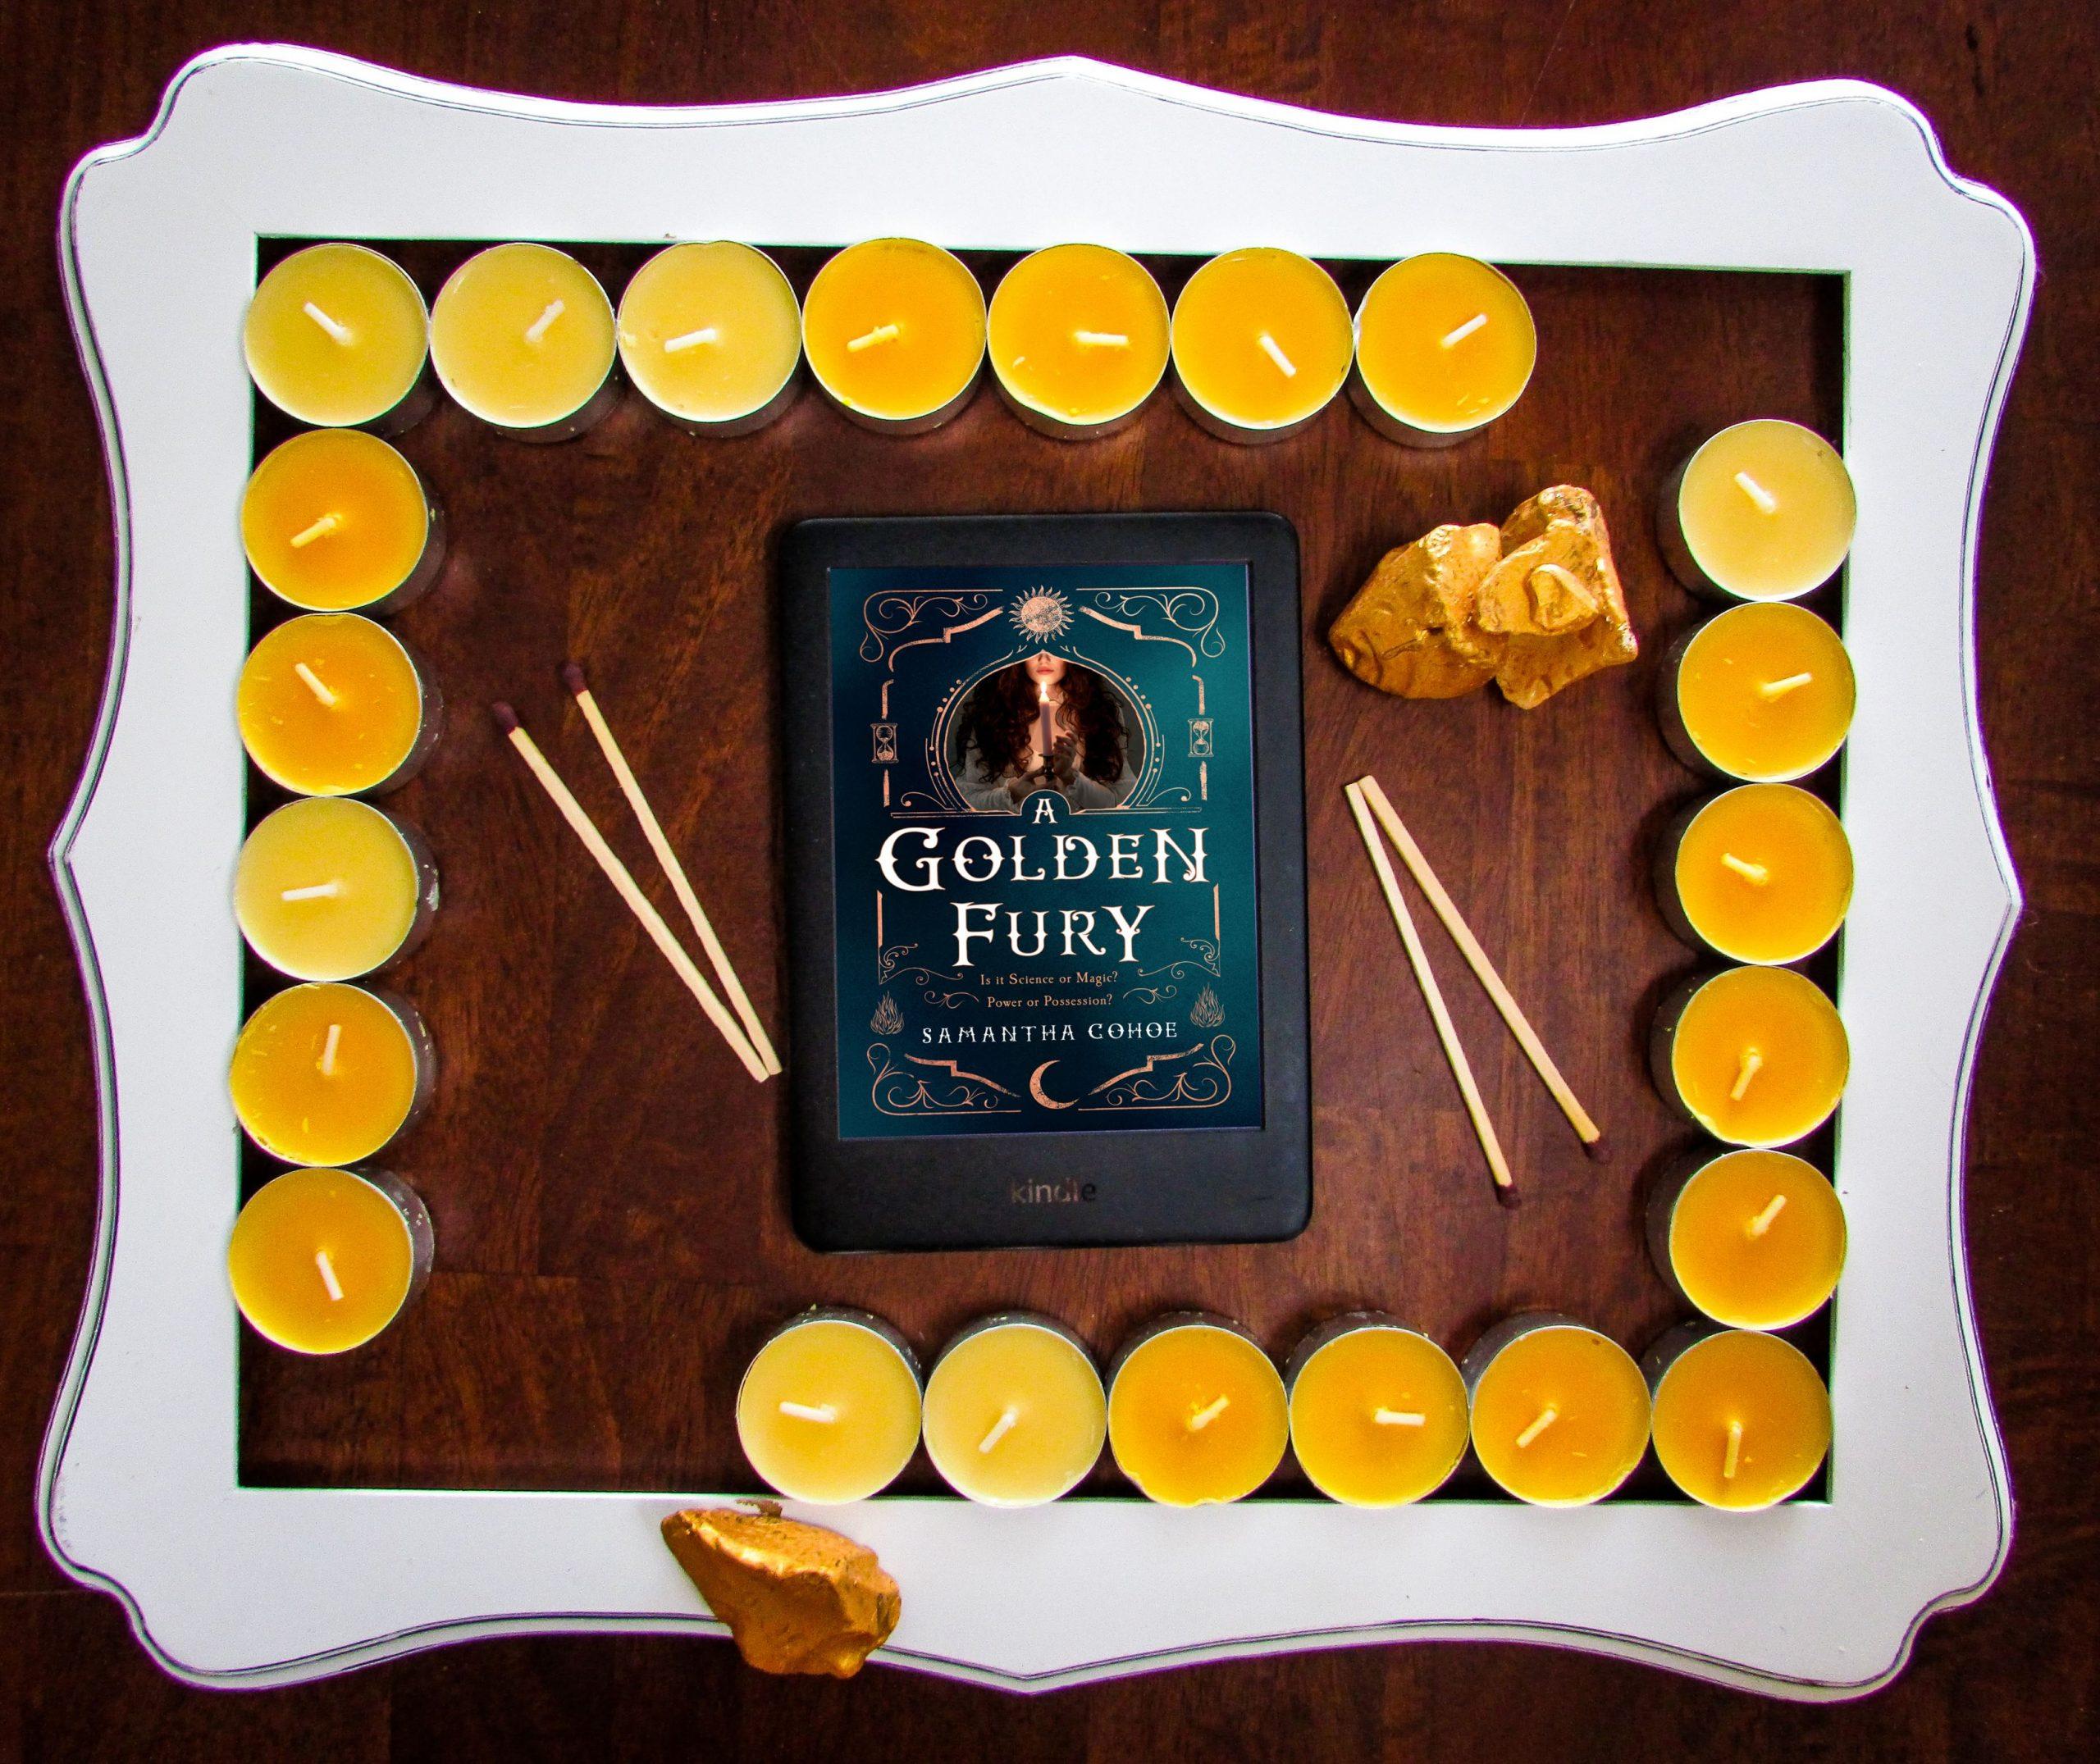 Read more about the article A Golden Fury by Samantha Cohoe